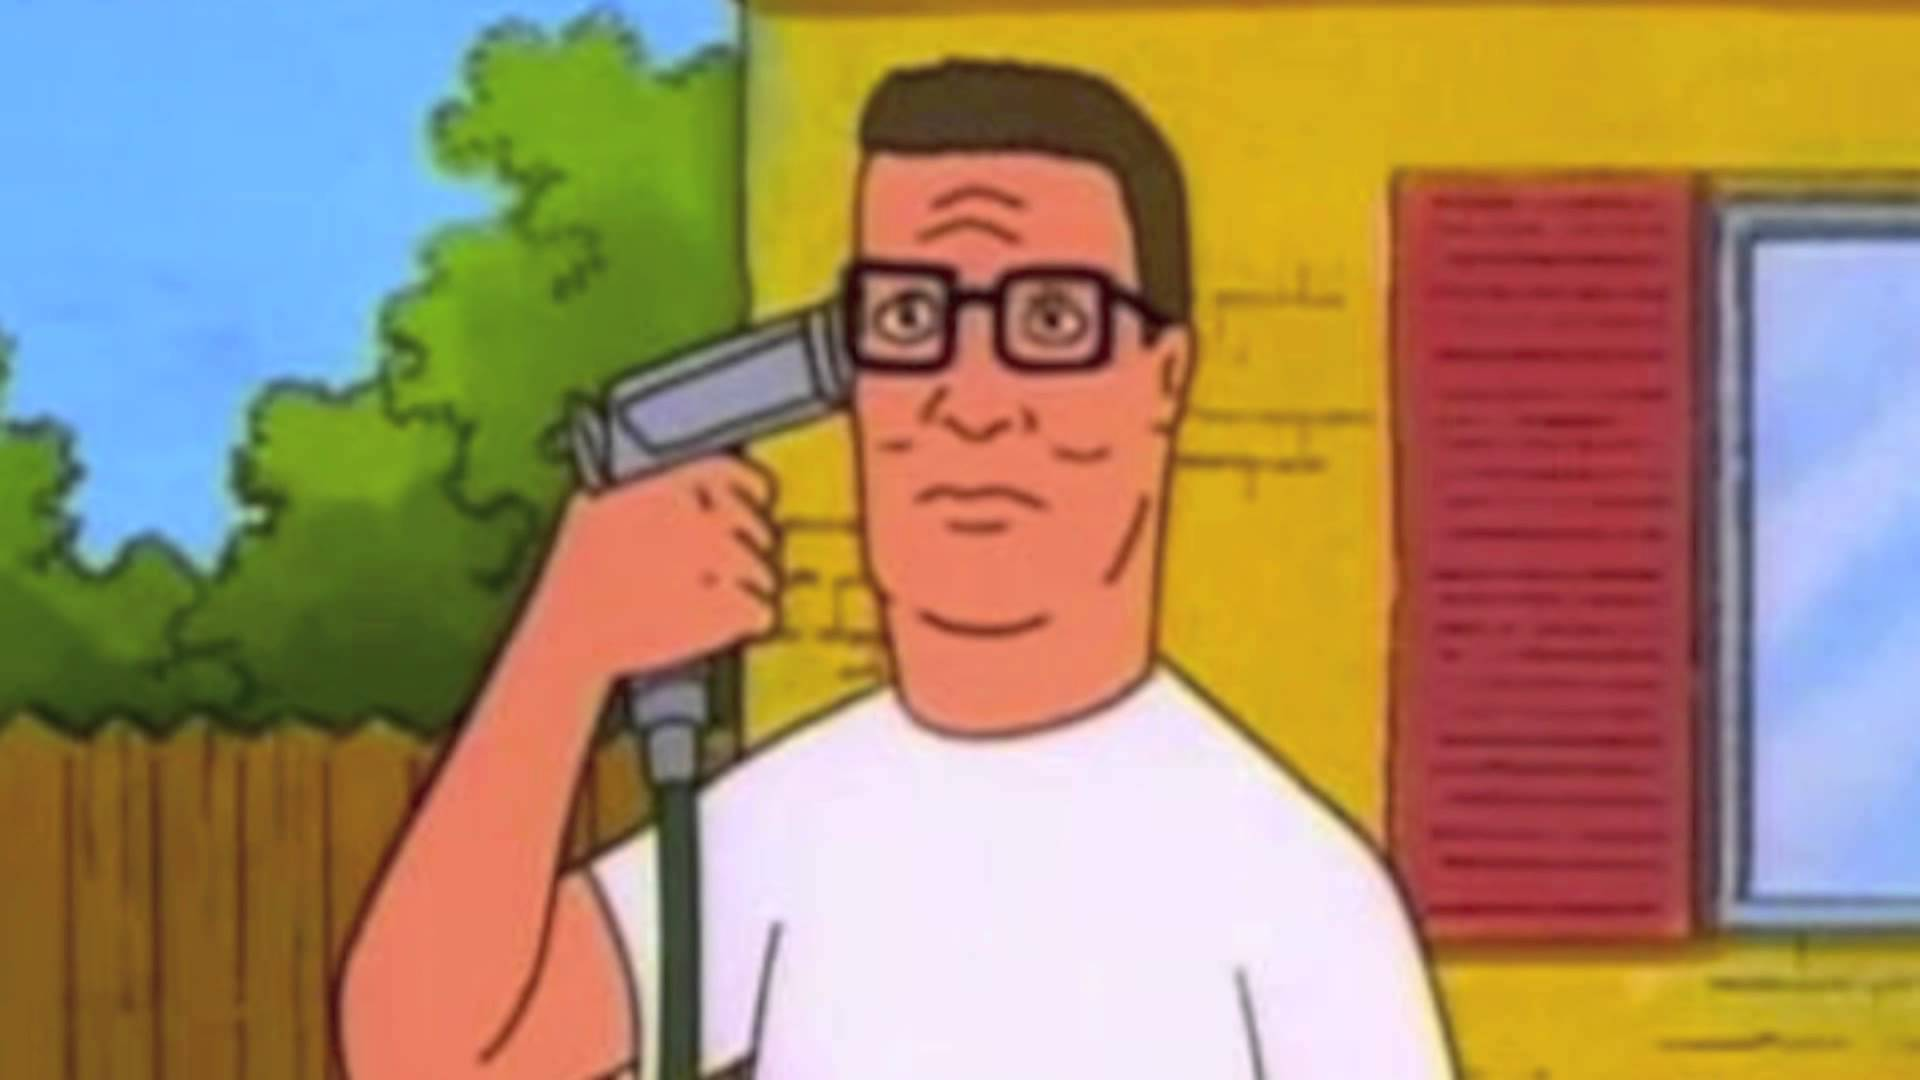 High Quality Hank Hill Blank Meme Template Hank Hill 1071104